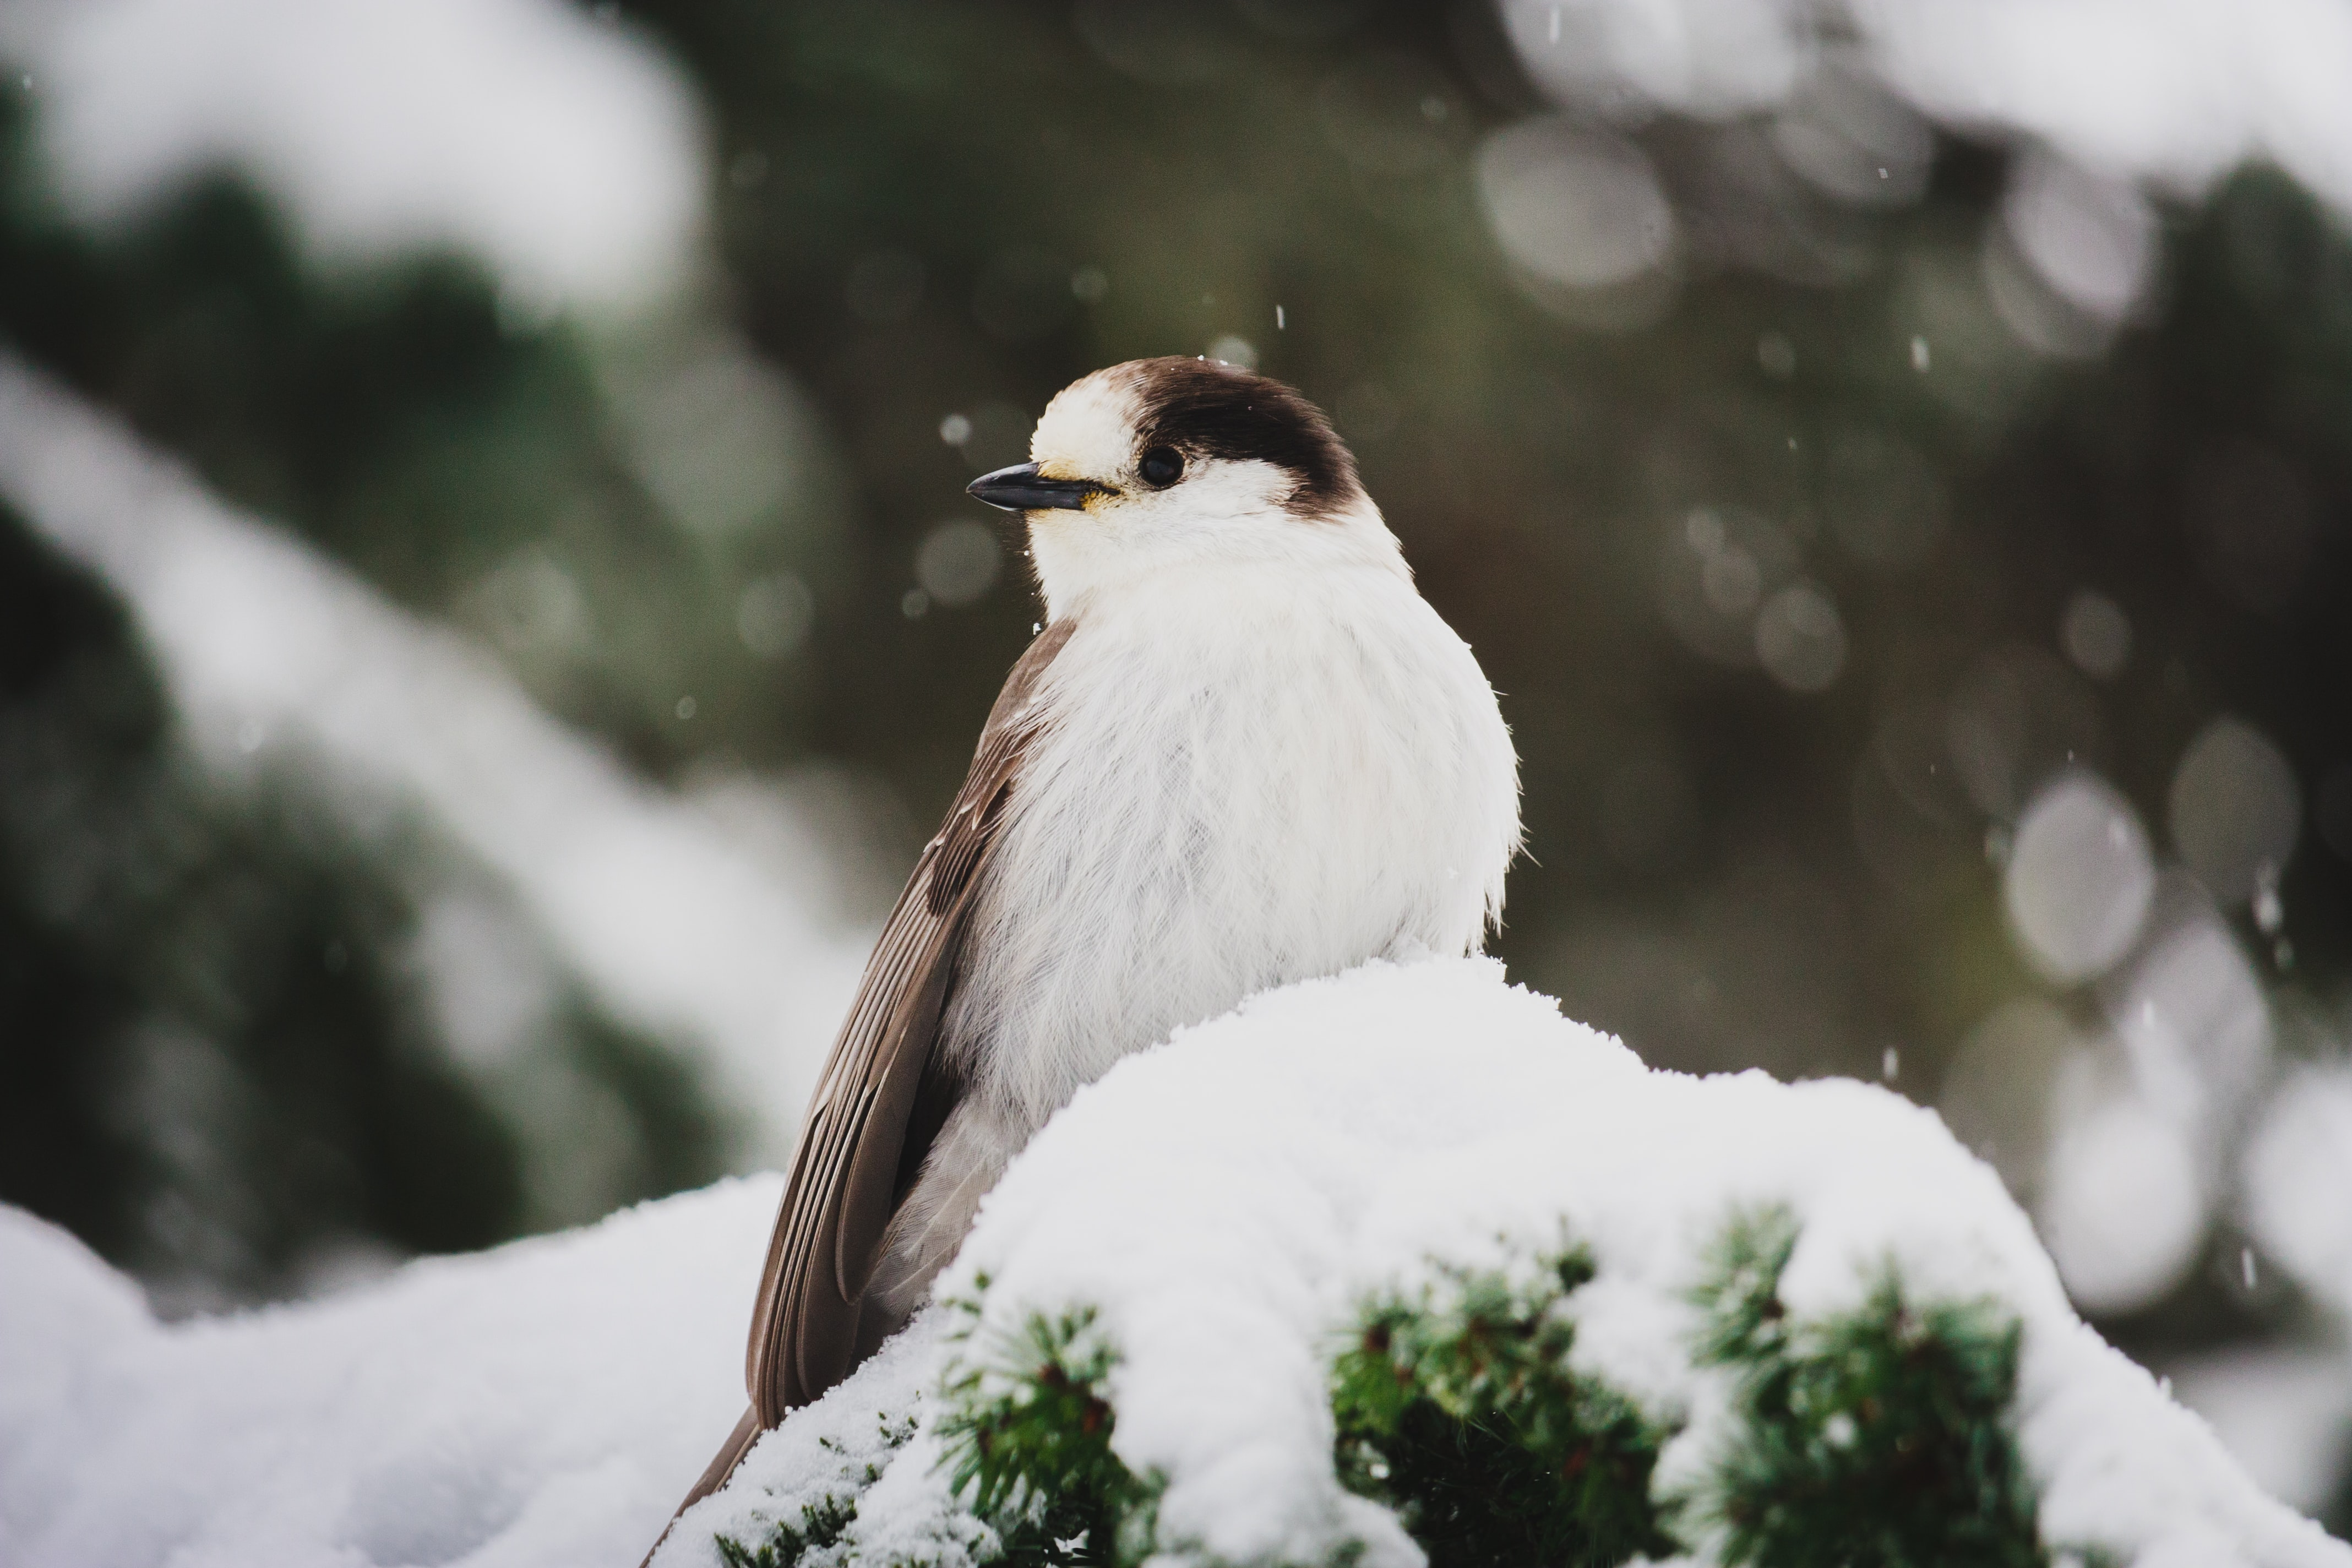 white and black bird on green plants with snow